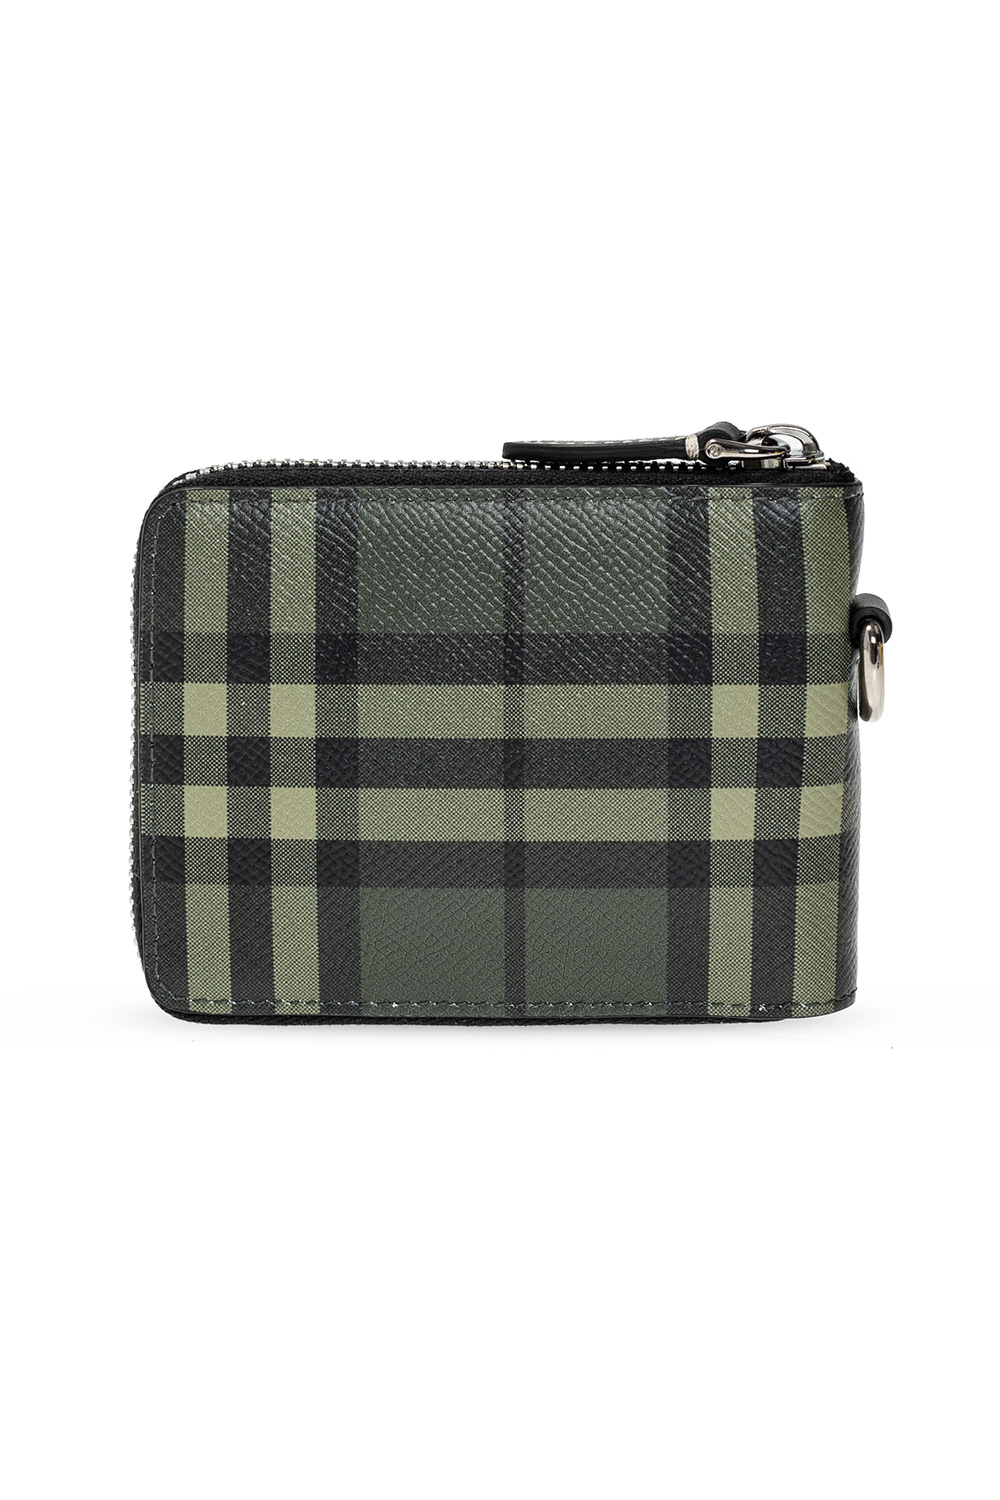 Burberry Wallet with strap